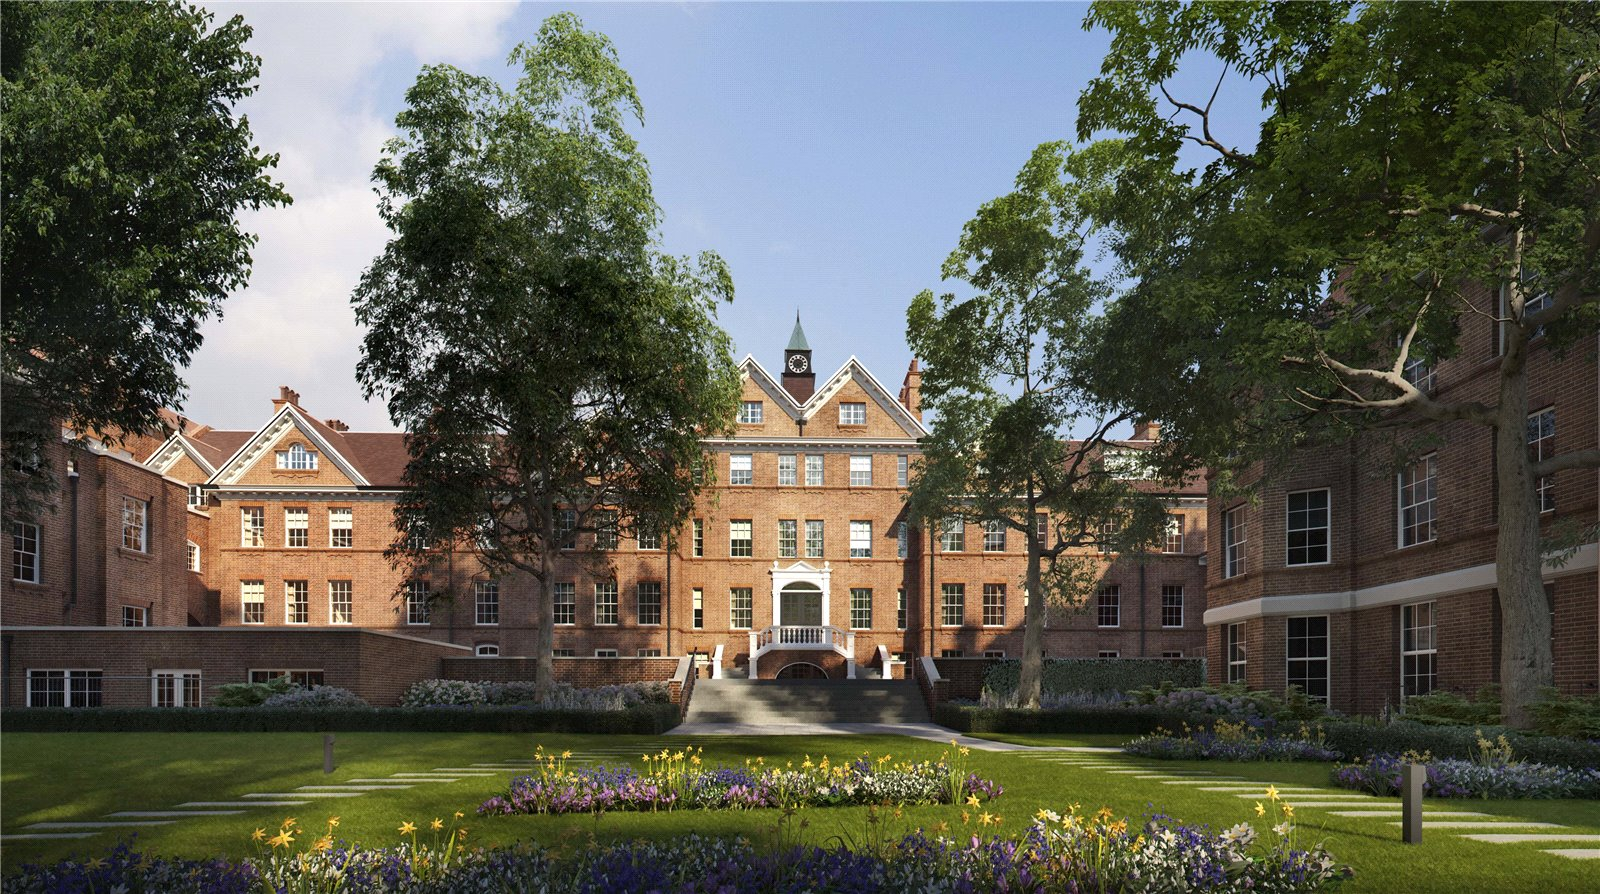 Other for Sale at Hampstead Manor, Kidderpore Avenue, Hampstead, London, NW3 Hampstead Manor, Kidderpore Avenue, Hampstead, London, NW3